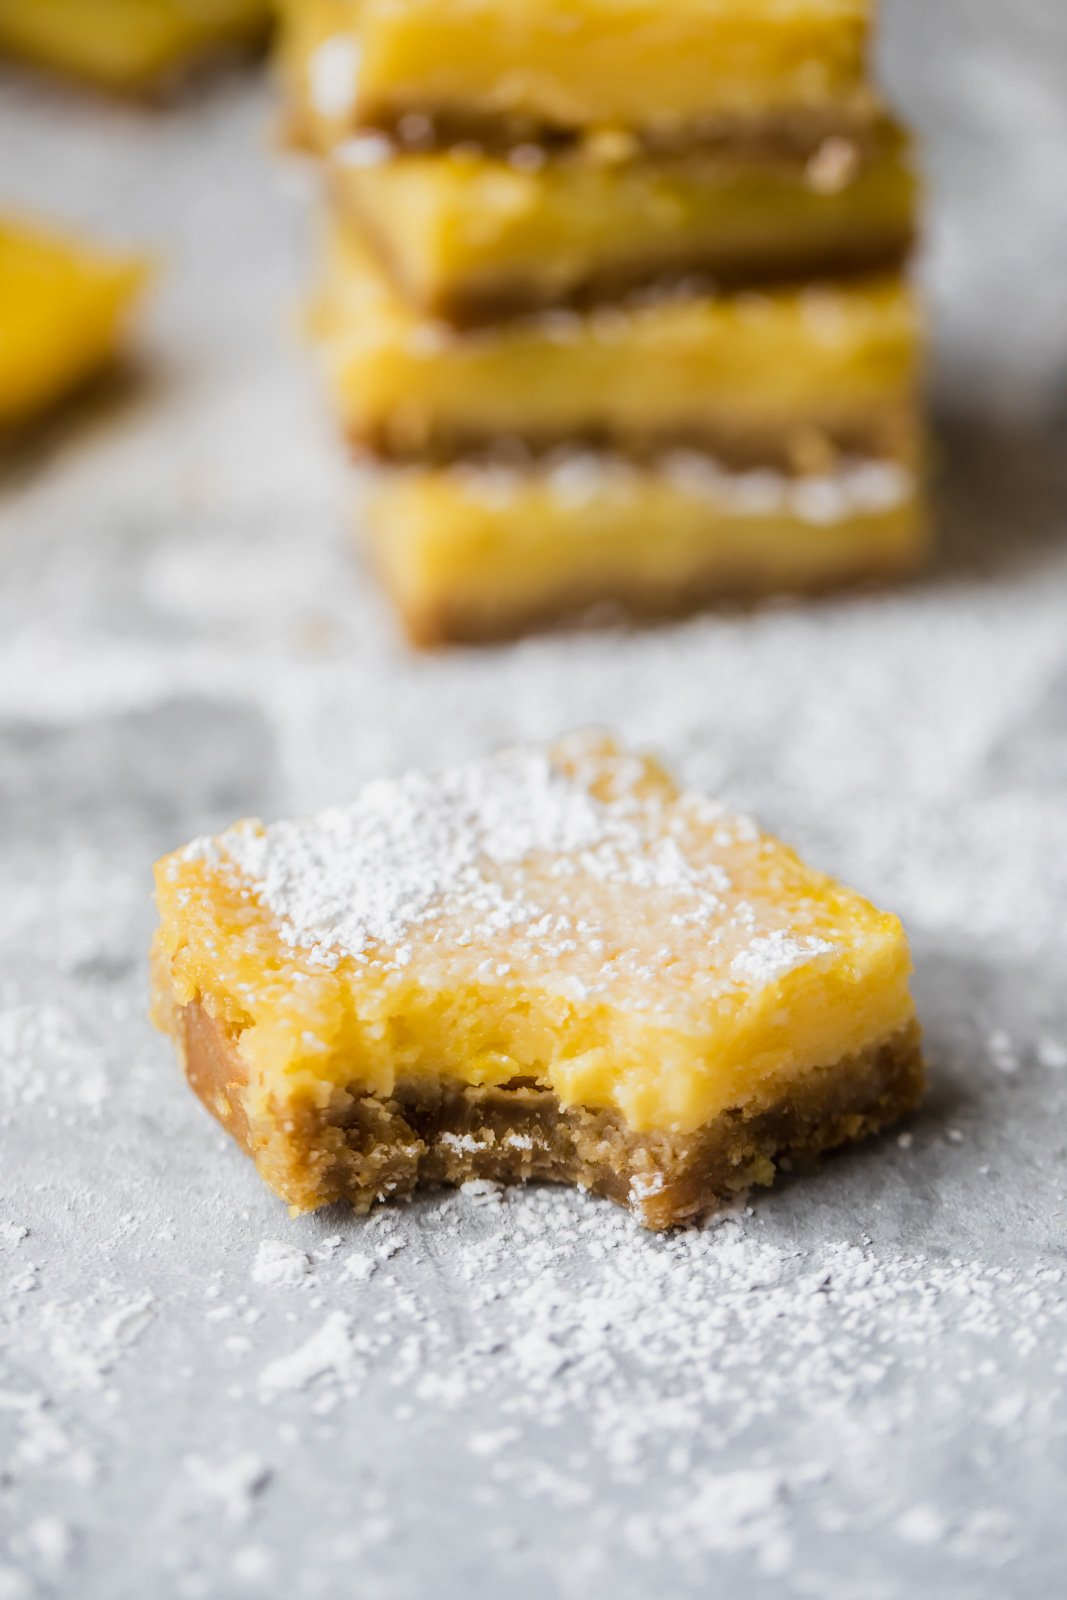 Healthy lemon bars that are gluten free, dairy free and paleo! The crust is made with a mix of almond flour and coconut flour and the light lemon filling is made with just 4 simple ingredients: fresh lemon juice, honey, eggs and coconut flour. You're going to LOVE these easy to make bars -- they're great for parties!